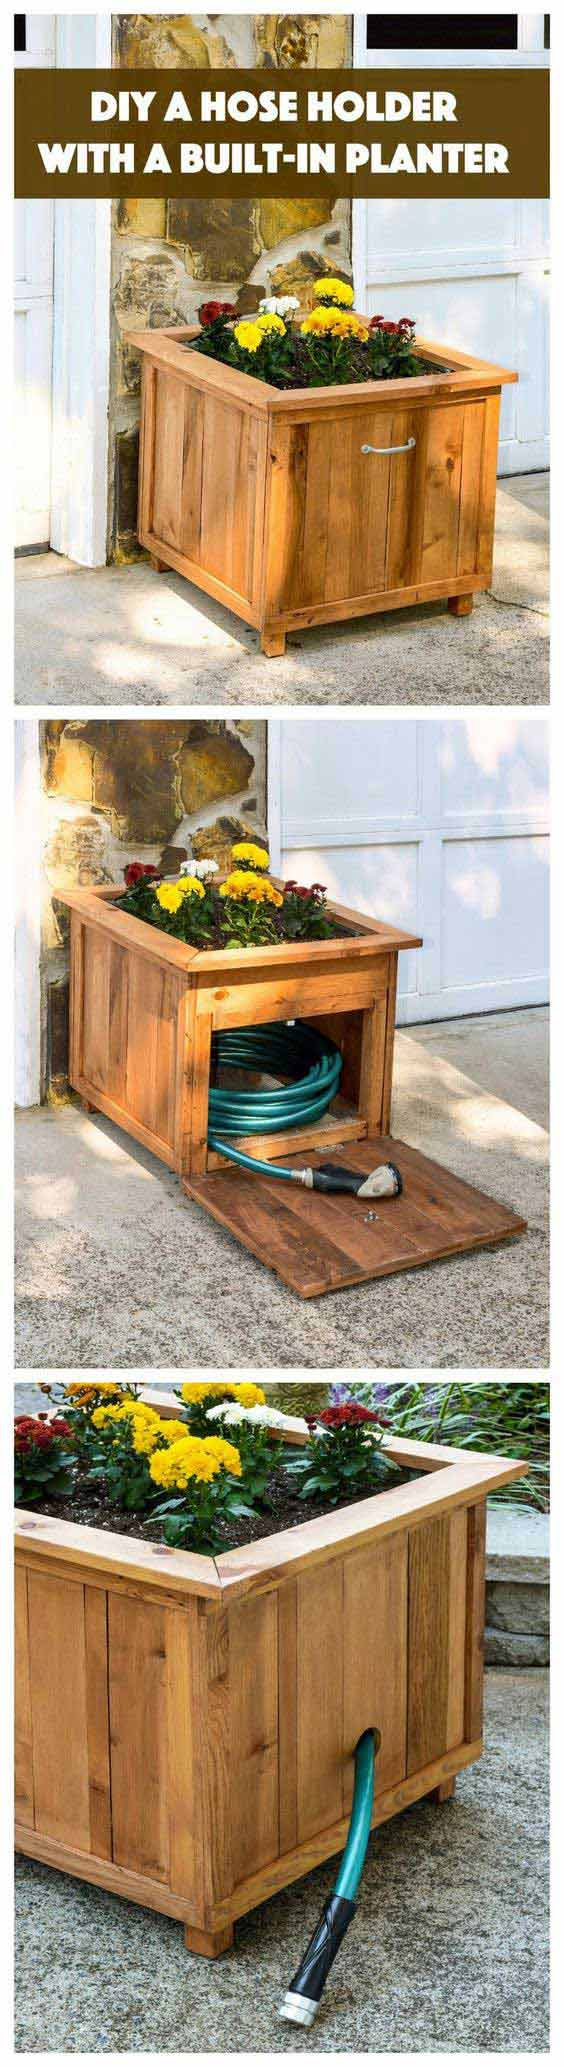 20+ Cool DIY Yard Furniture Ideas 2017